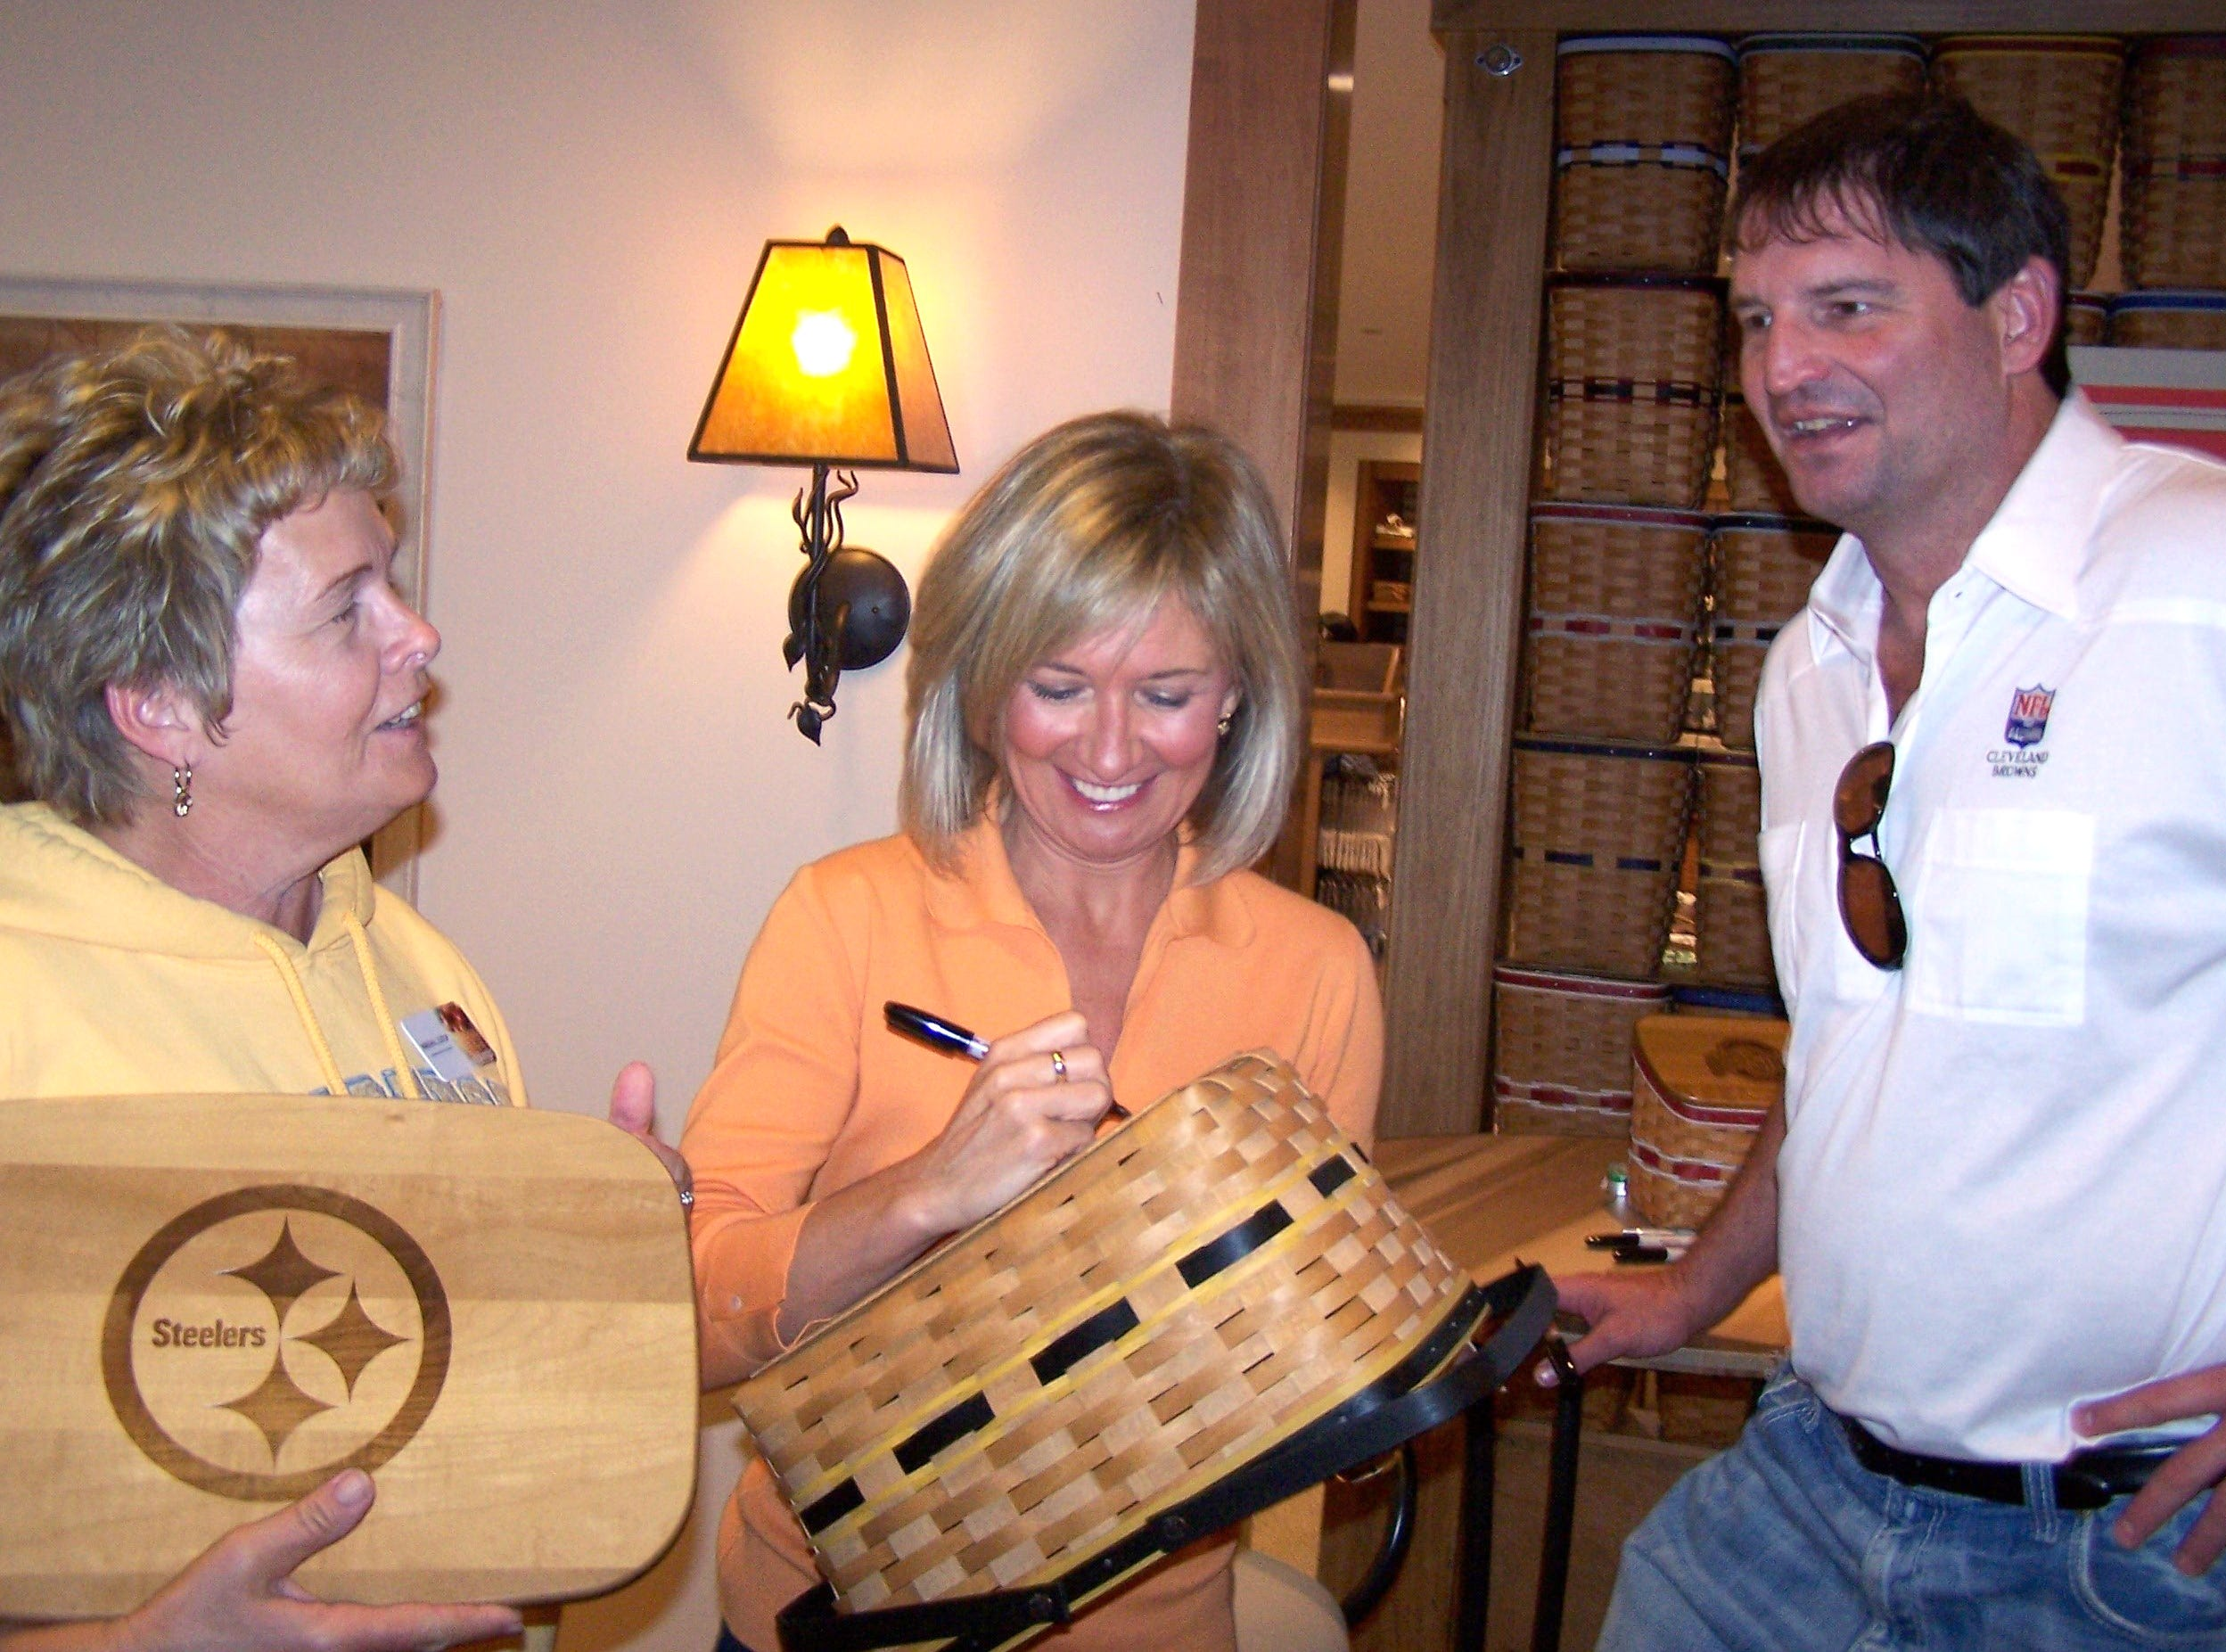 Bernie Kosar chats with Marsha Cutlip as Tami Longaberger signs Team Spirit basket lids at the Longaberger Heritage Days event Friday.